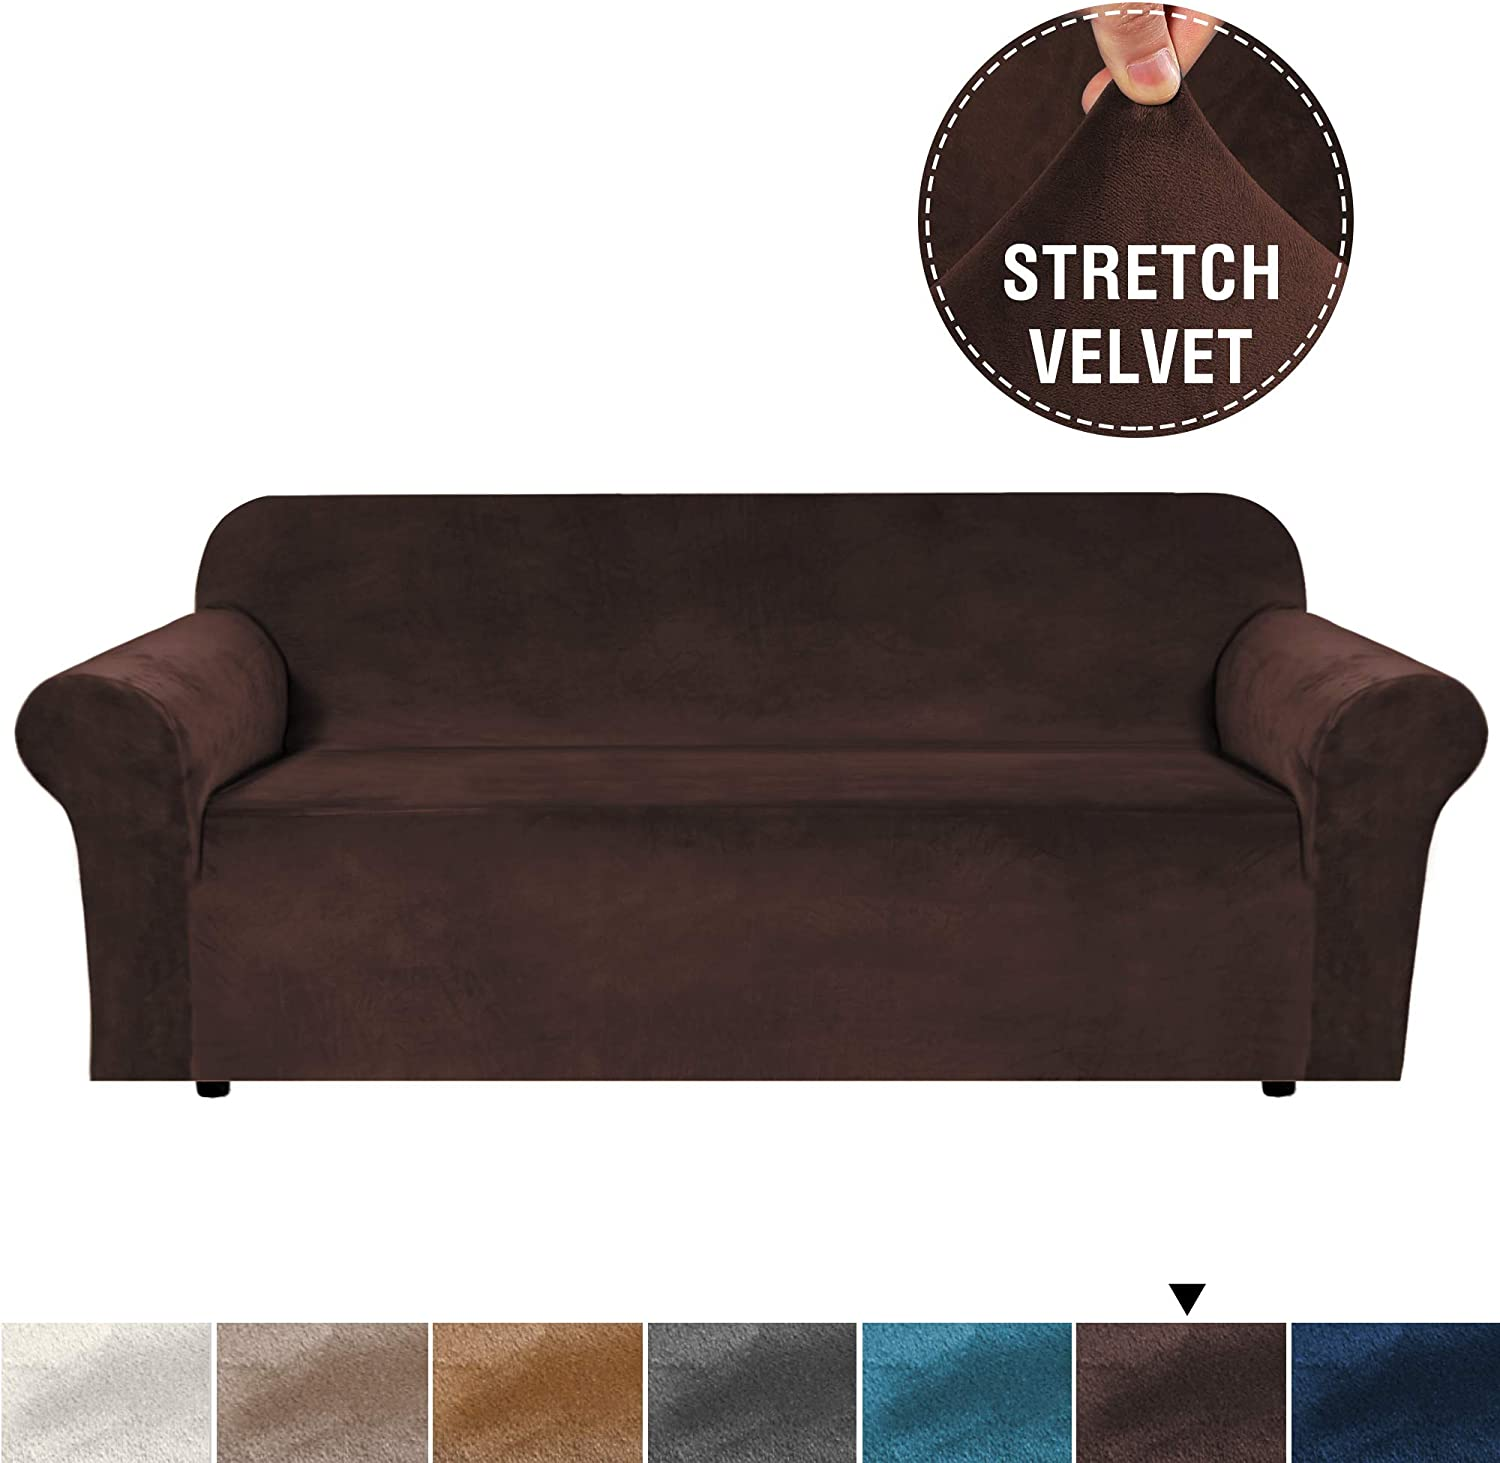 H.VERSAILTEX Real Super Velvet Plush Sofa Cover/Slipcover with Extra 2 Straps (1 Piece Style) Rich Velvet High Stretch Slip Resistant Stylish Furniture Cover Couch Covers for 3 Seat (Sofa, Brown)